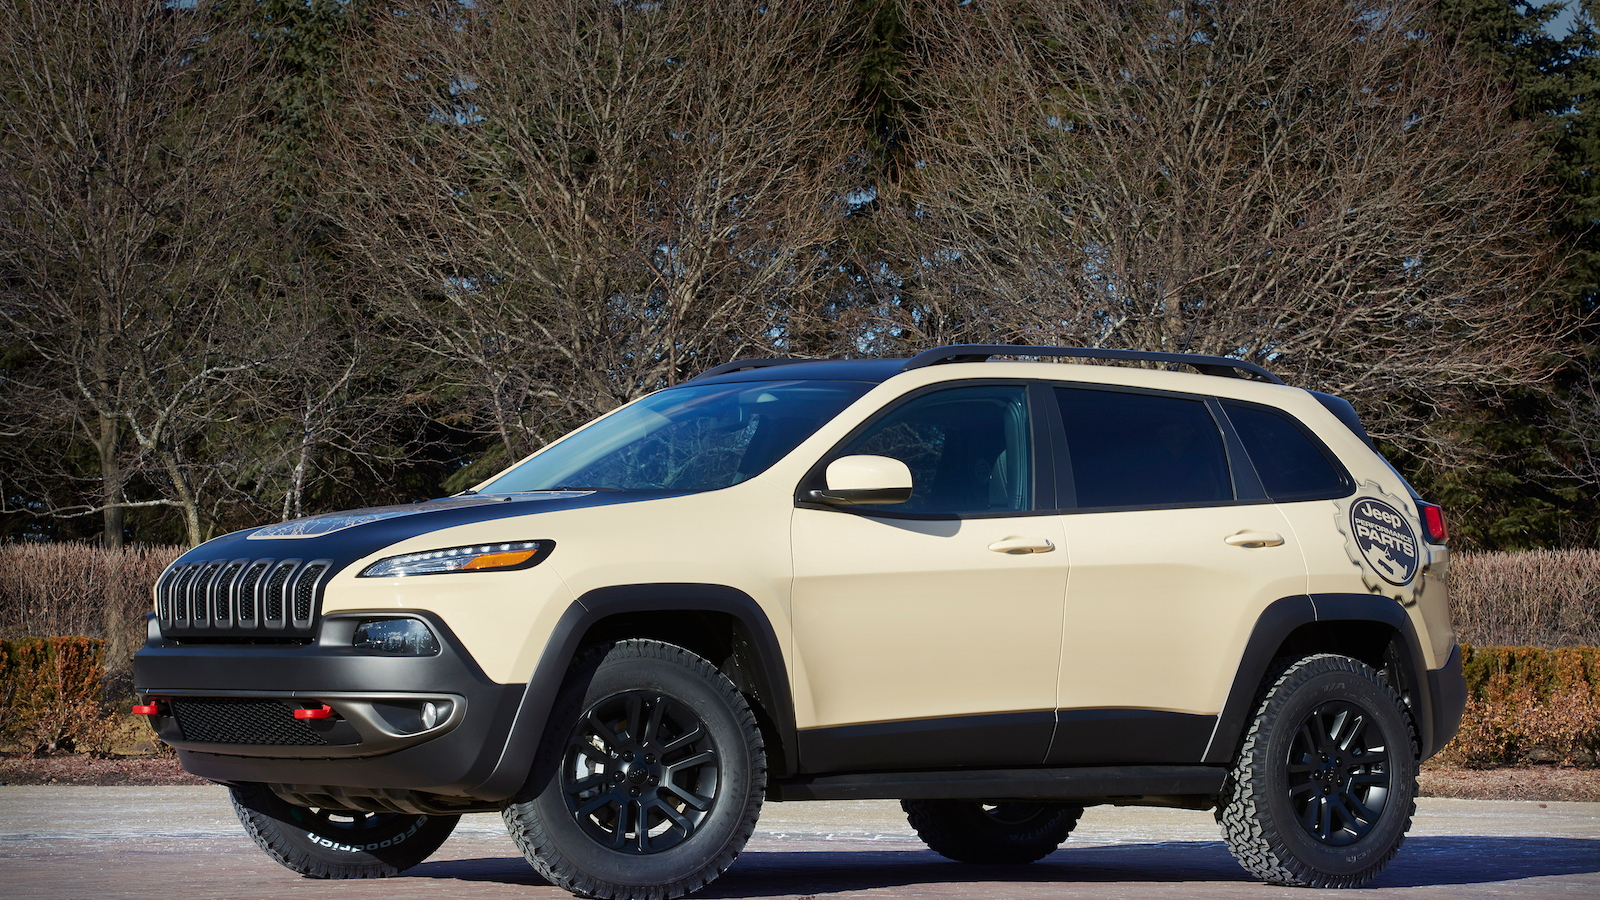 Jeep Cherokee Canyon Trail Concept for Moab Easter Jeep Safari, 2015